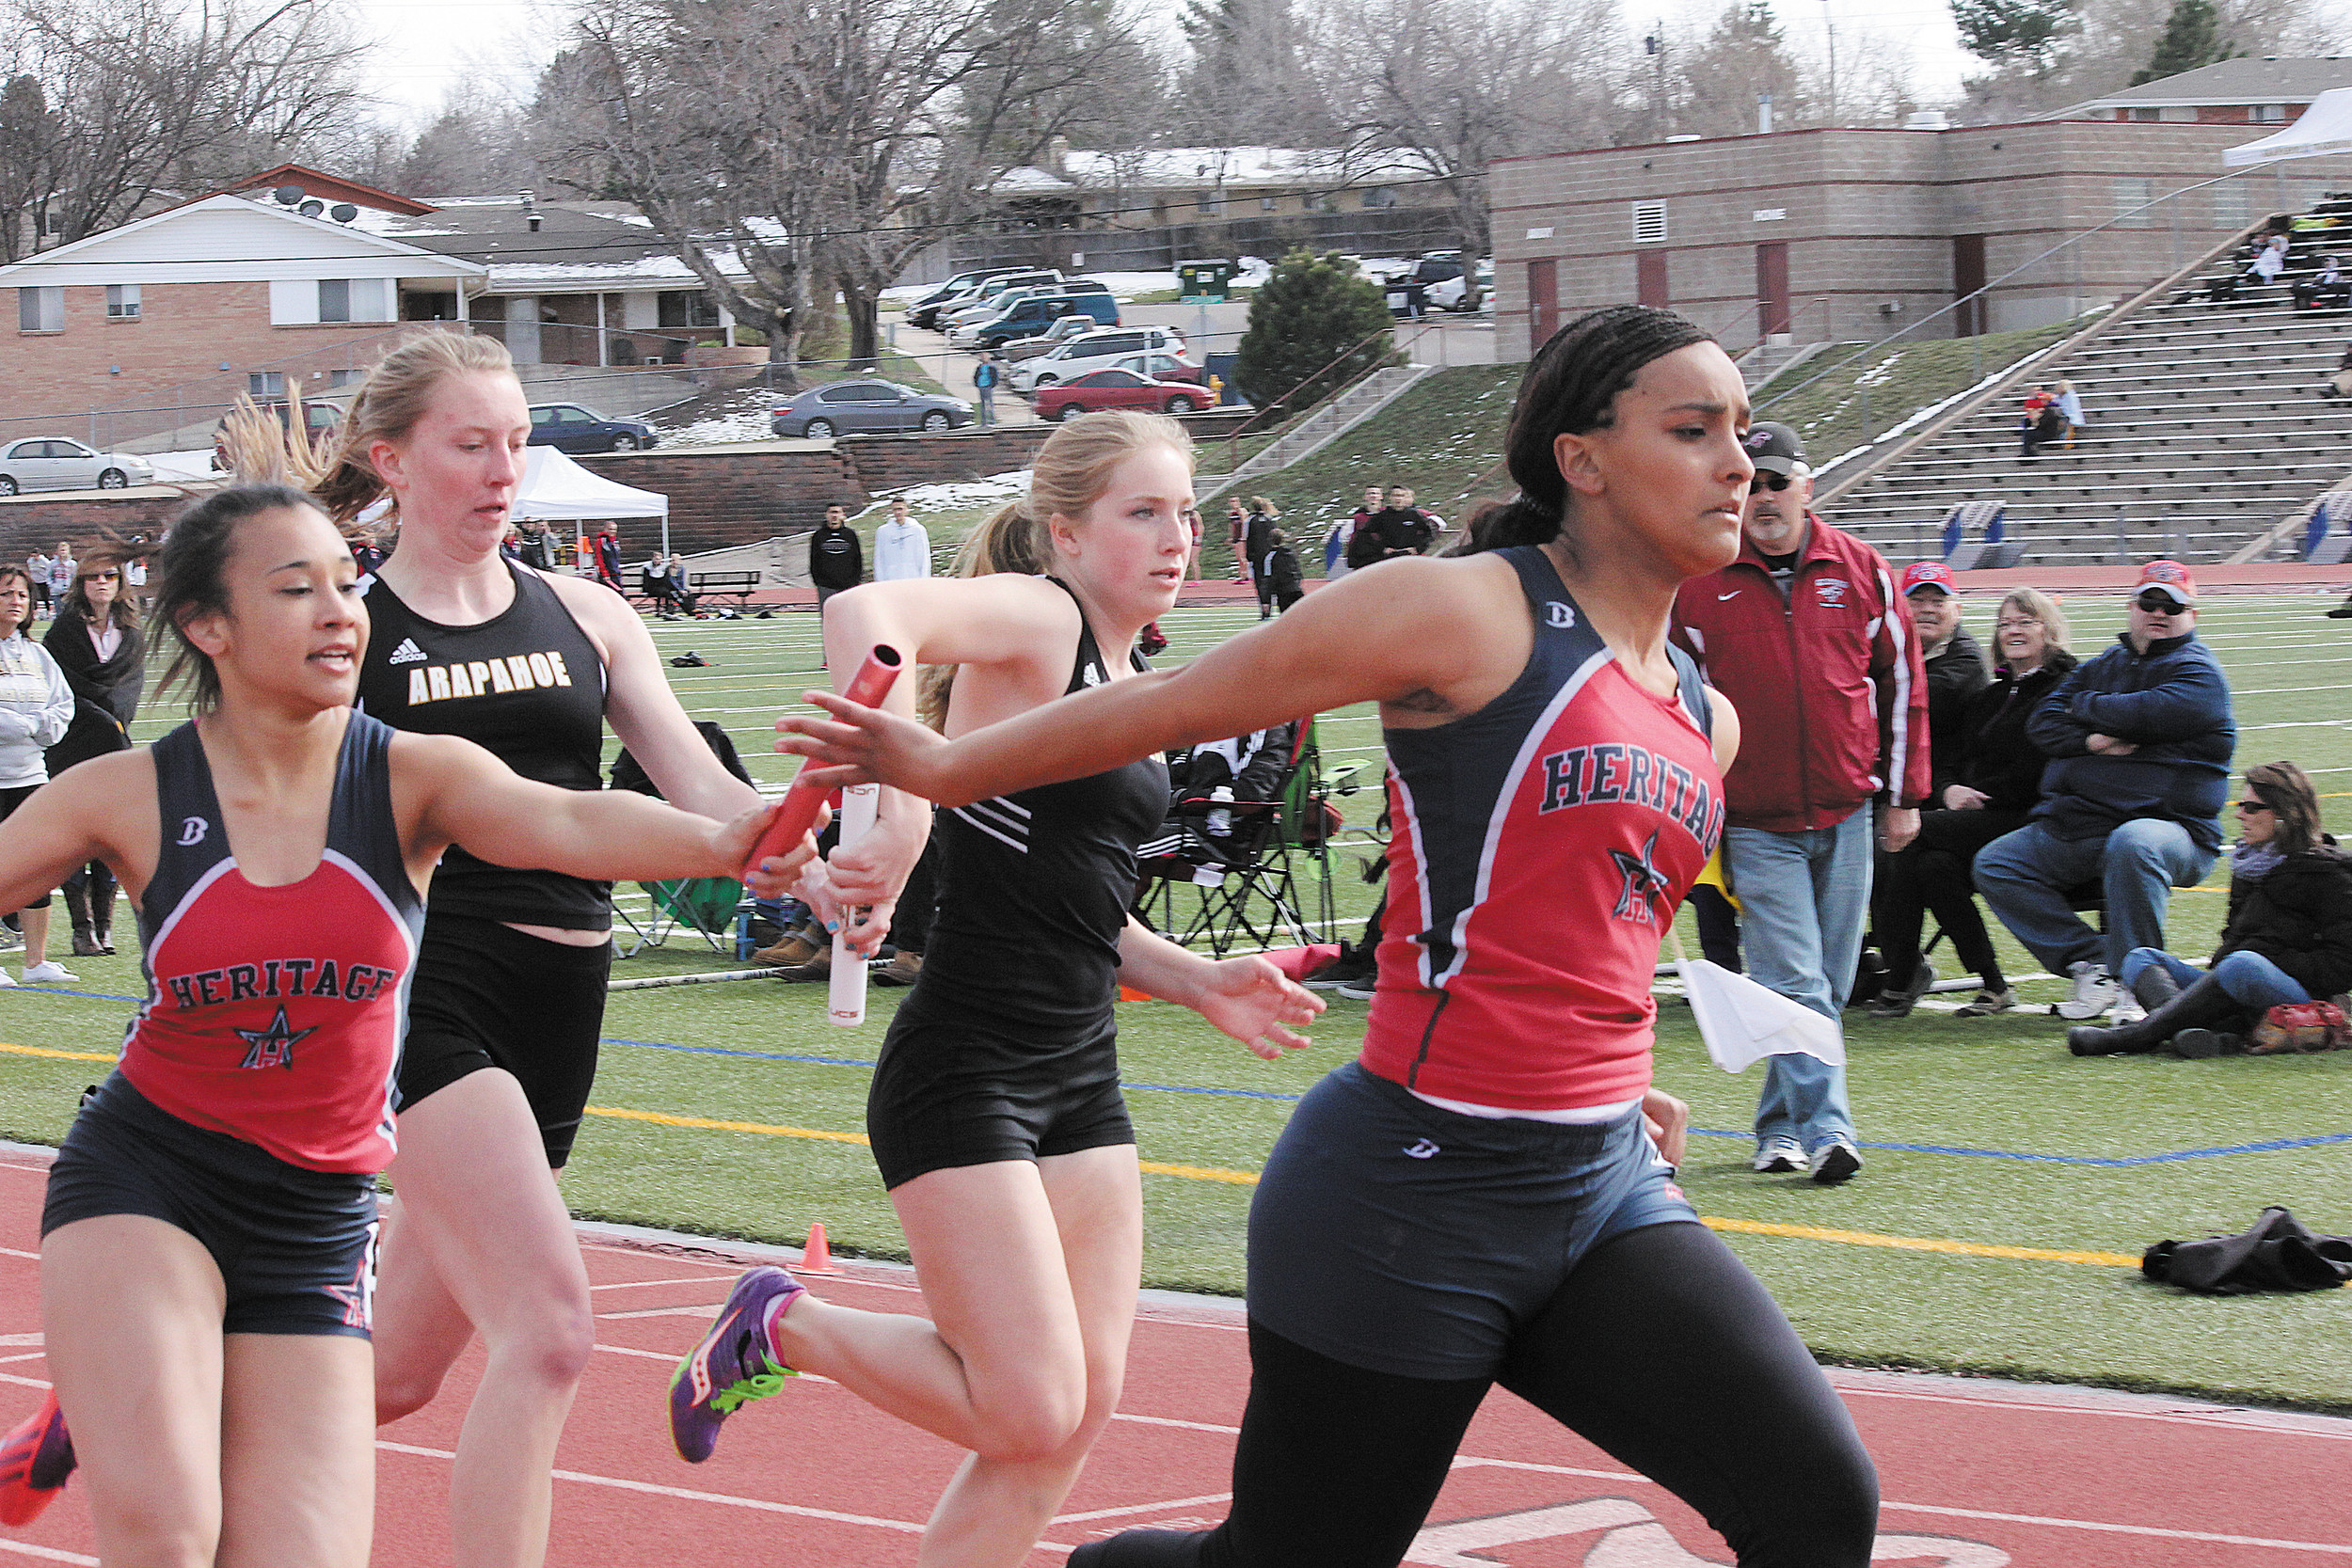 Erin Gaines, left, hands the baton to Heritage teammate Takyra LeBlanc in the 800-meter sprint medley at the April 4 Littleton City Meet. The handoff was good and the Eagles won the event.